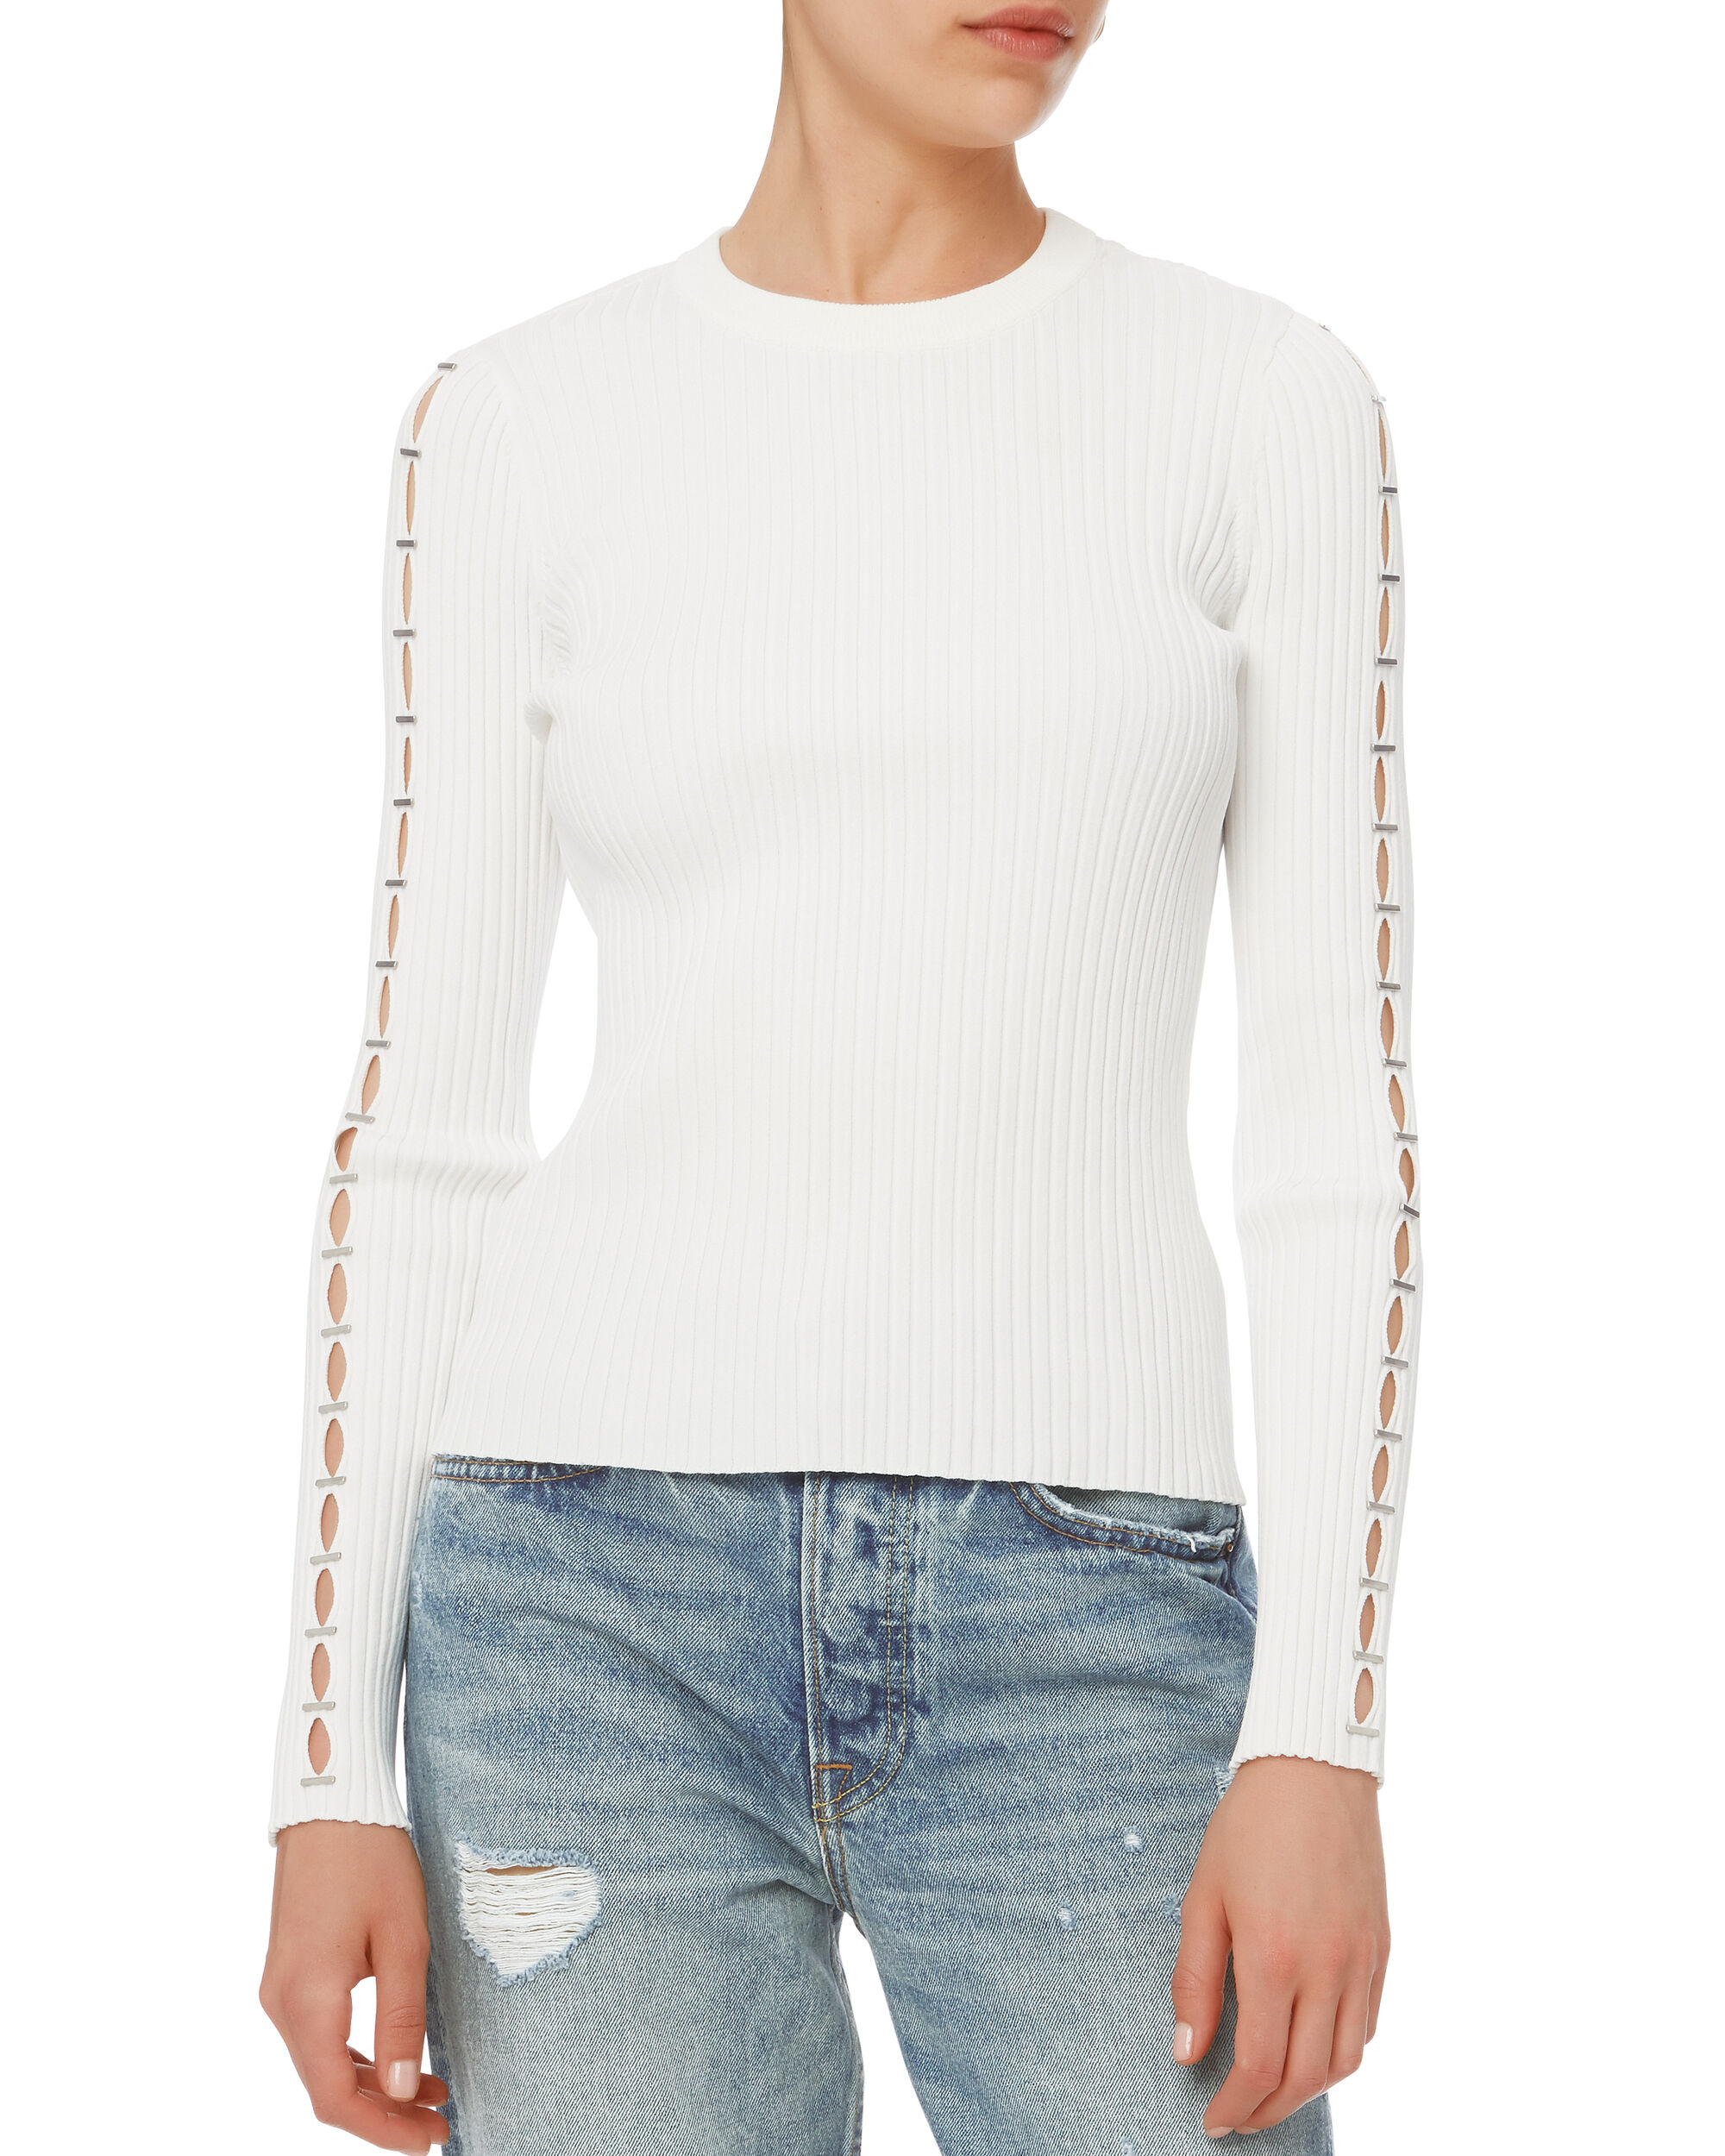 Staple Detail Knit Top, WHITE, hi-res